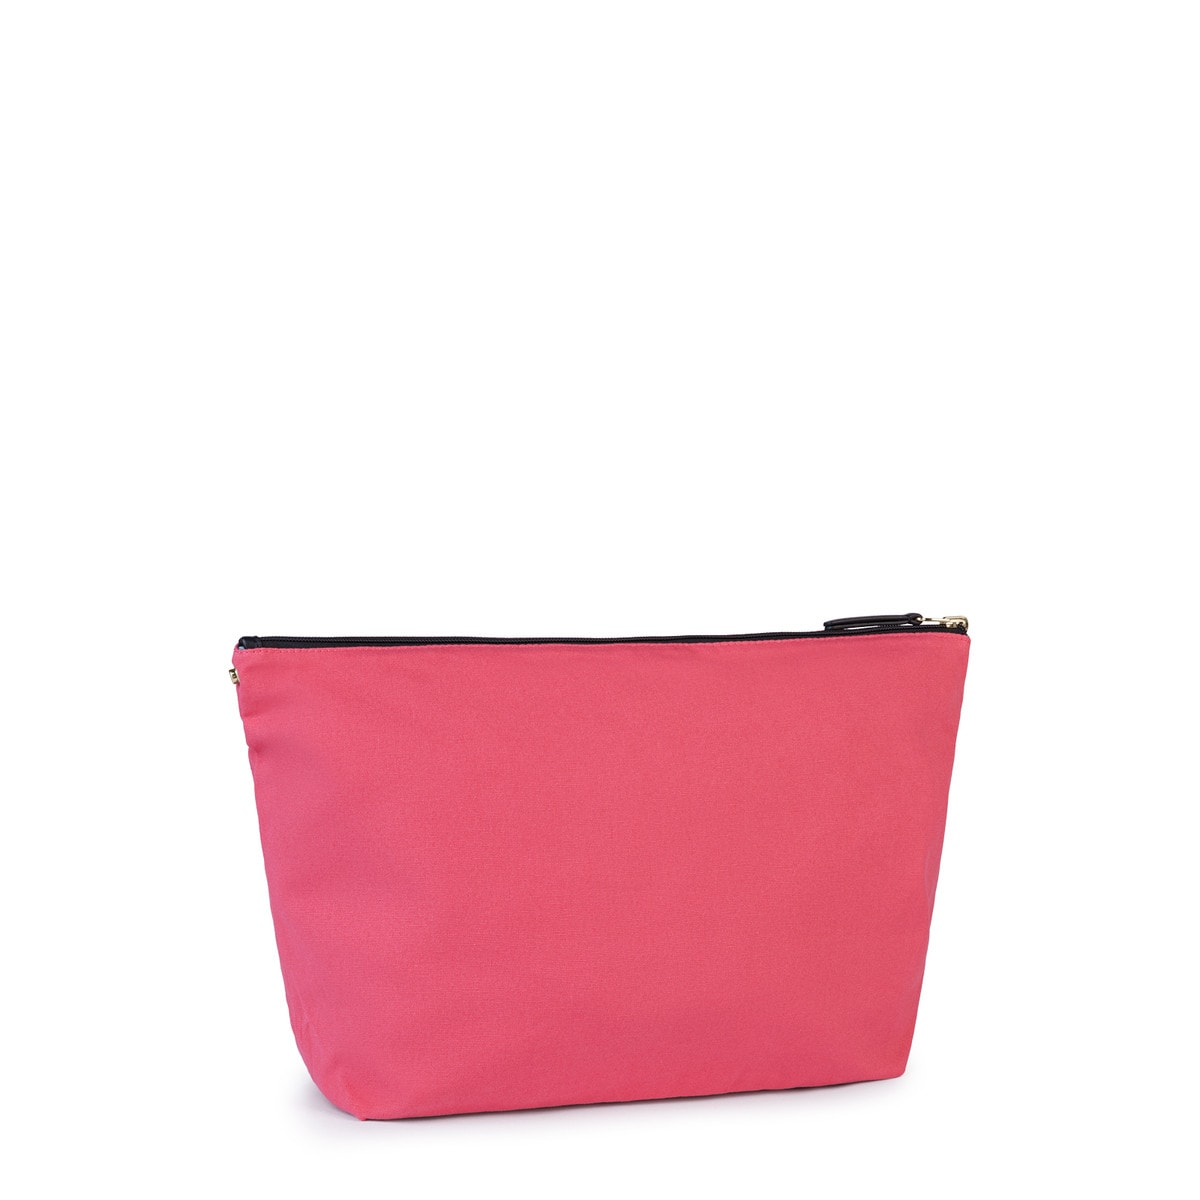 Medium coral-mint colored Kaos Shock Reversible Handbag